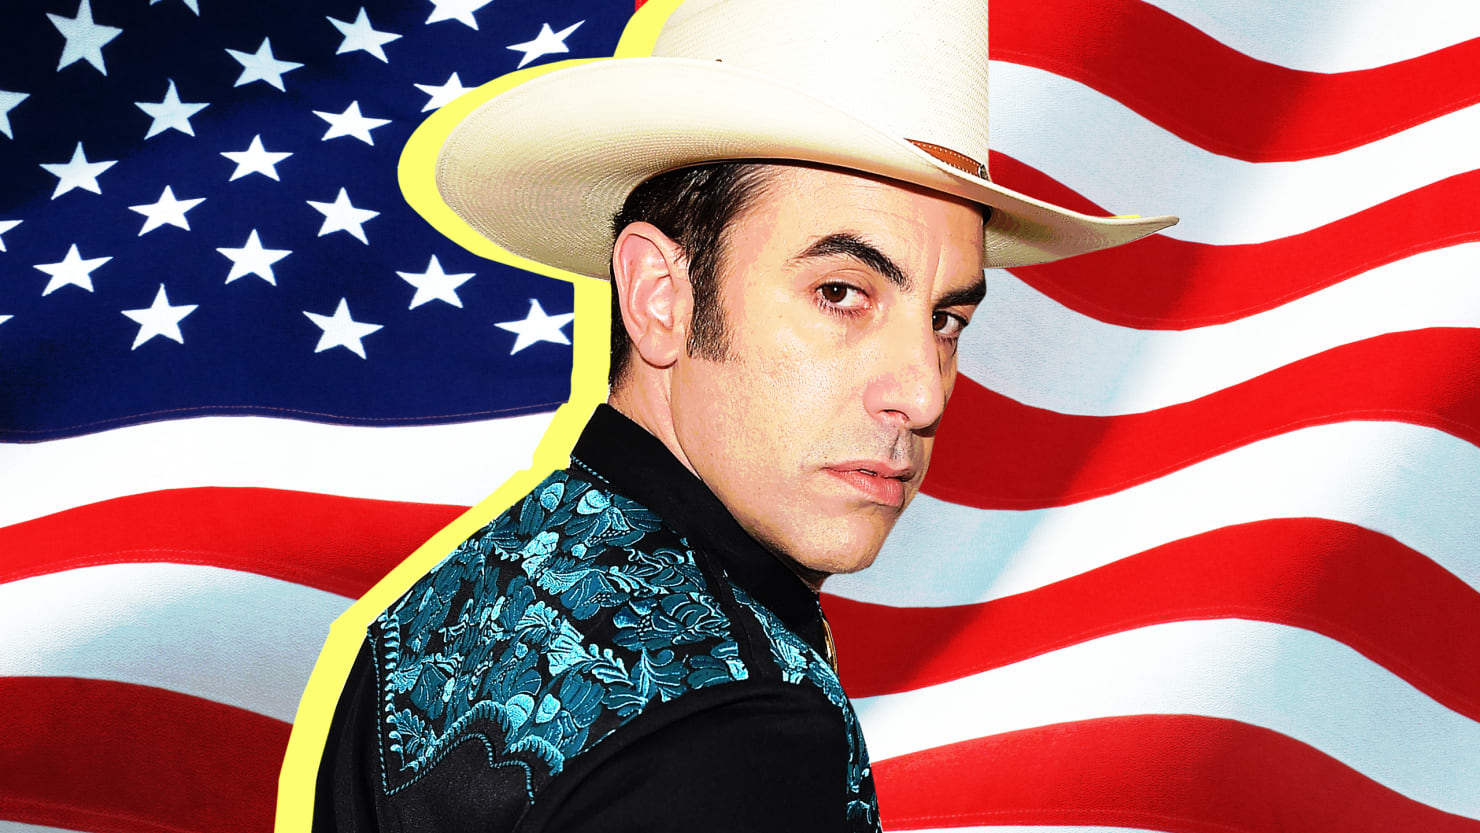 "Alt=""Sacha Baron Cohen and the American flag."""